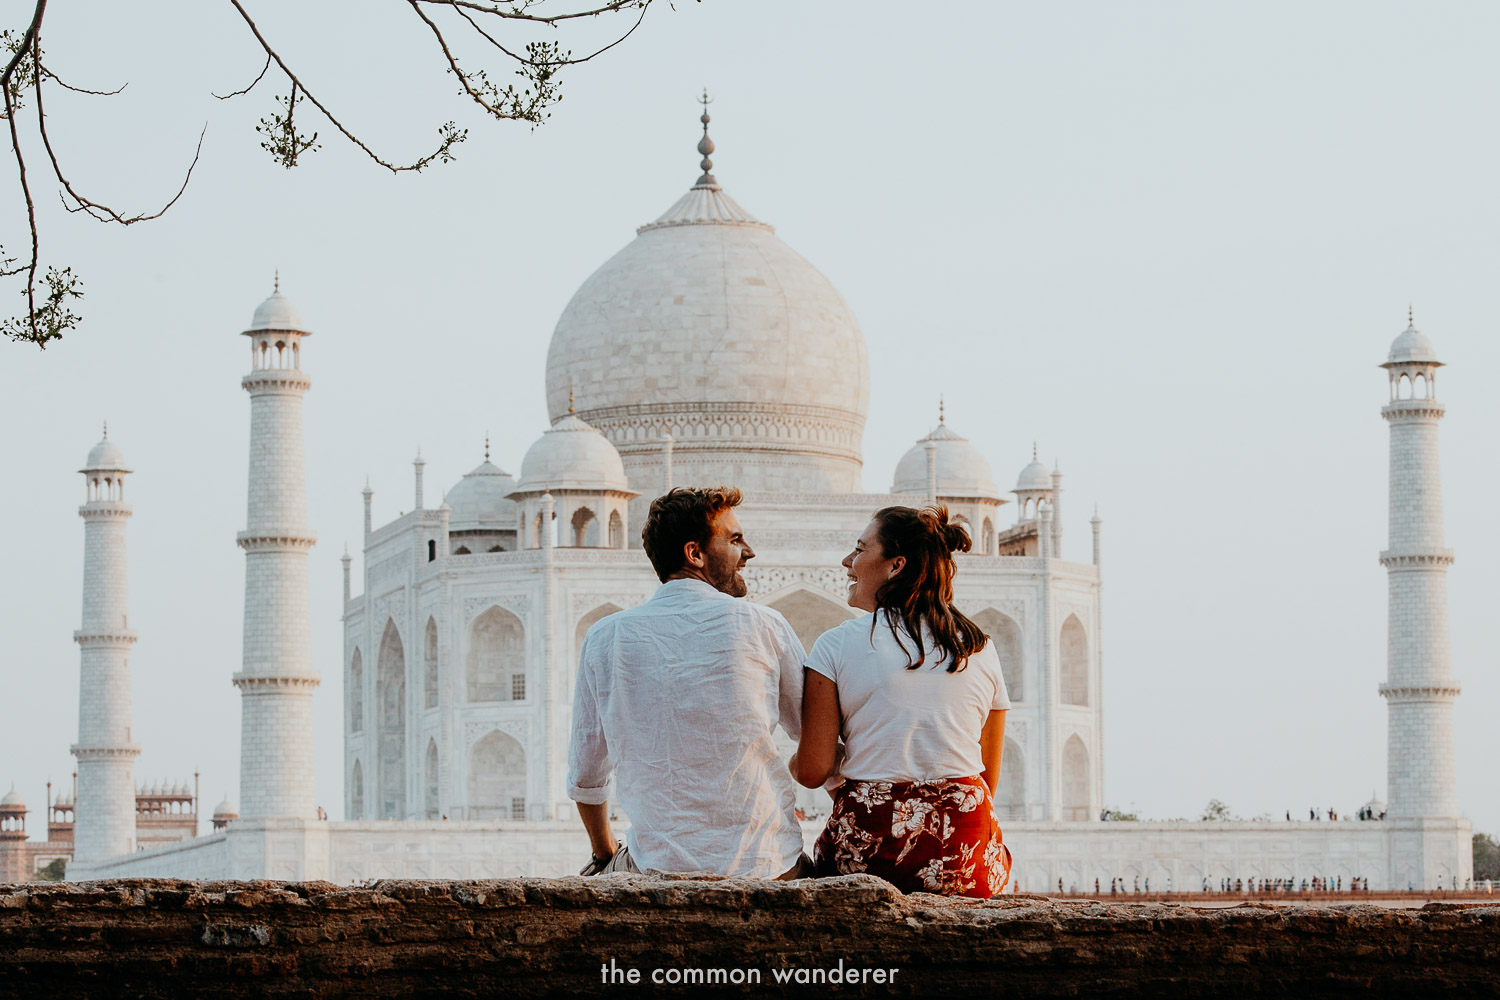 Exploring India via rail - the best way to see India